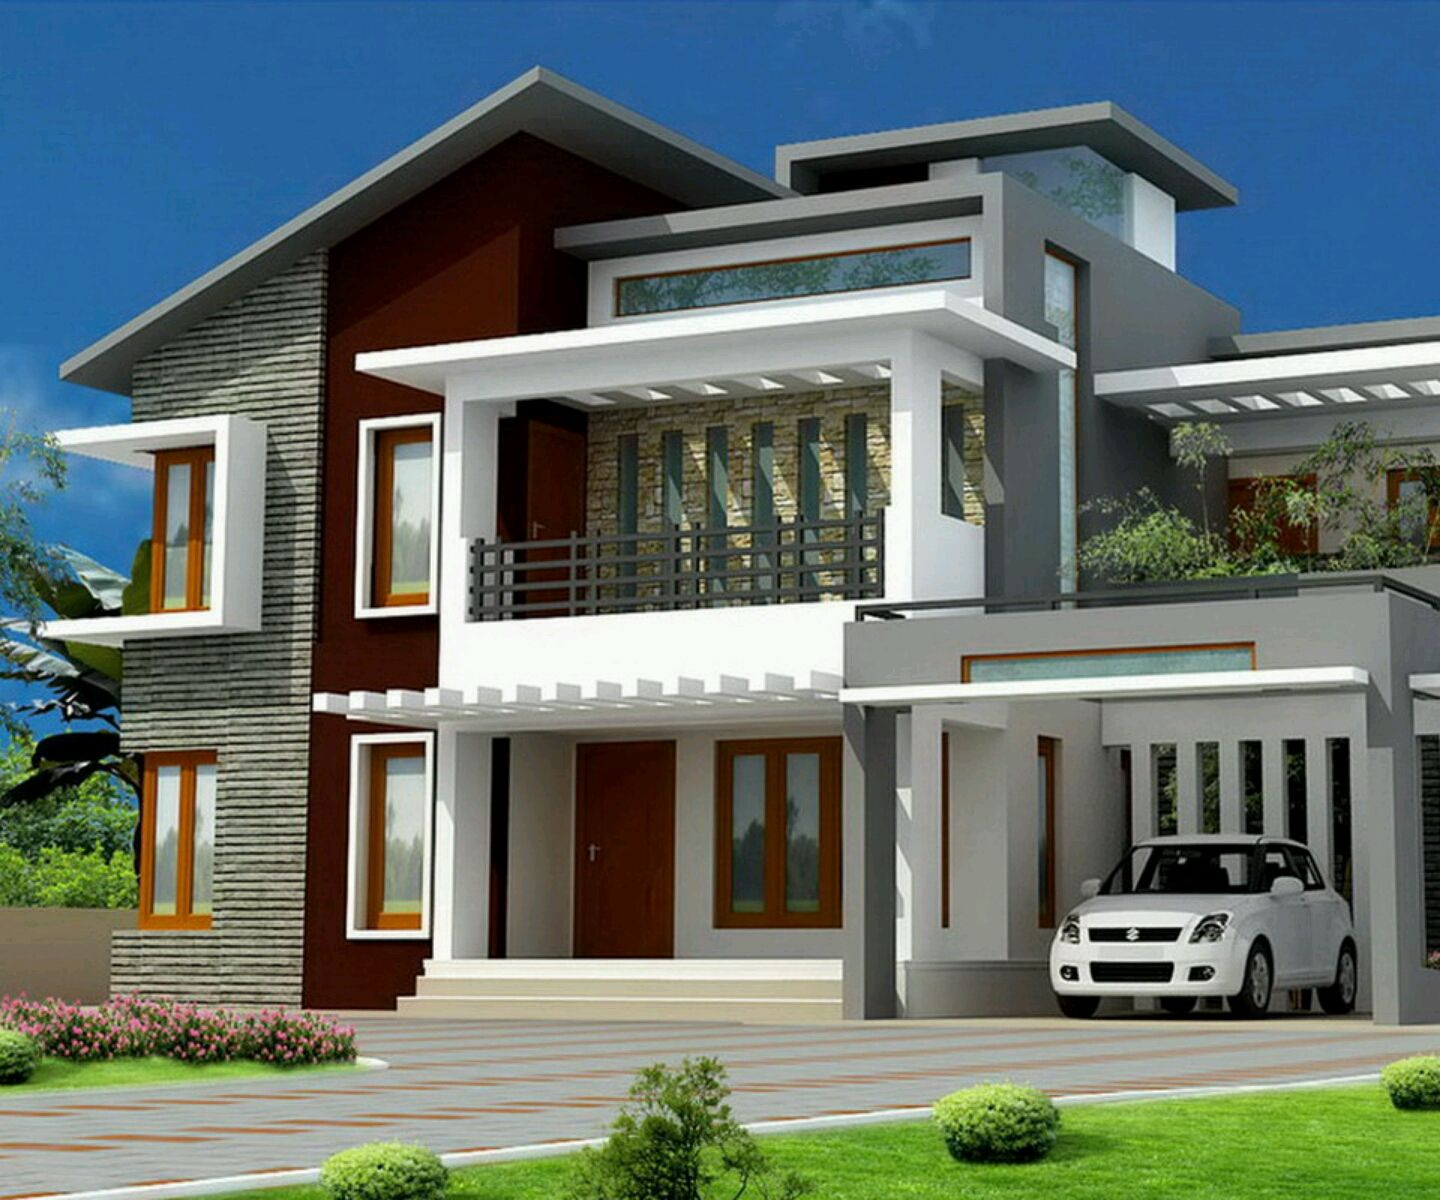 Big House With Modern Design - Modern home with latest exterior ...